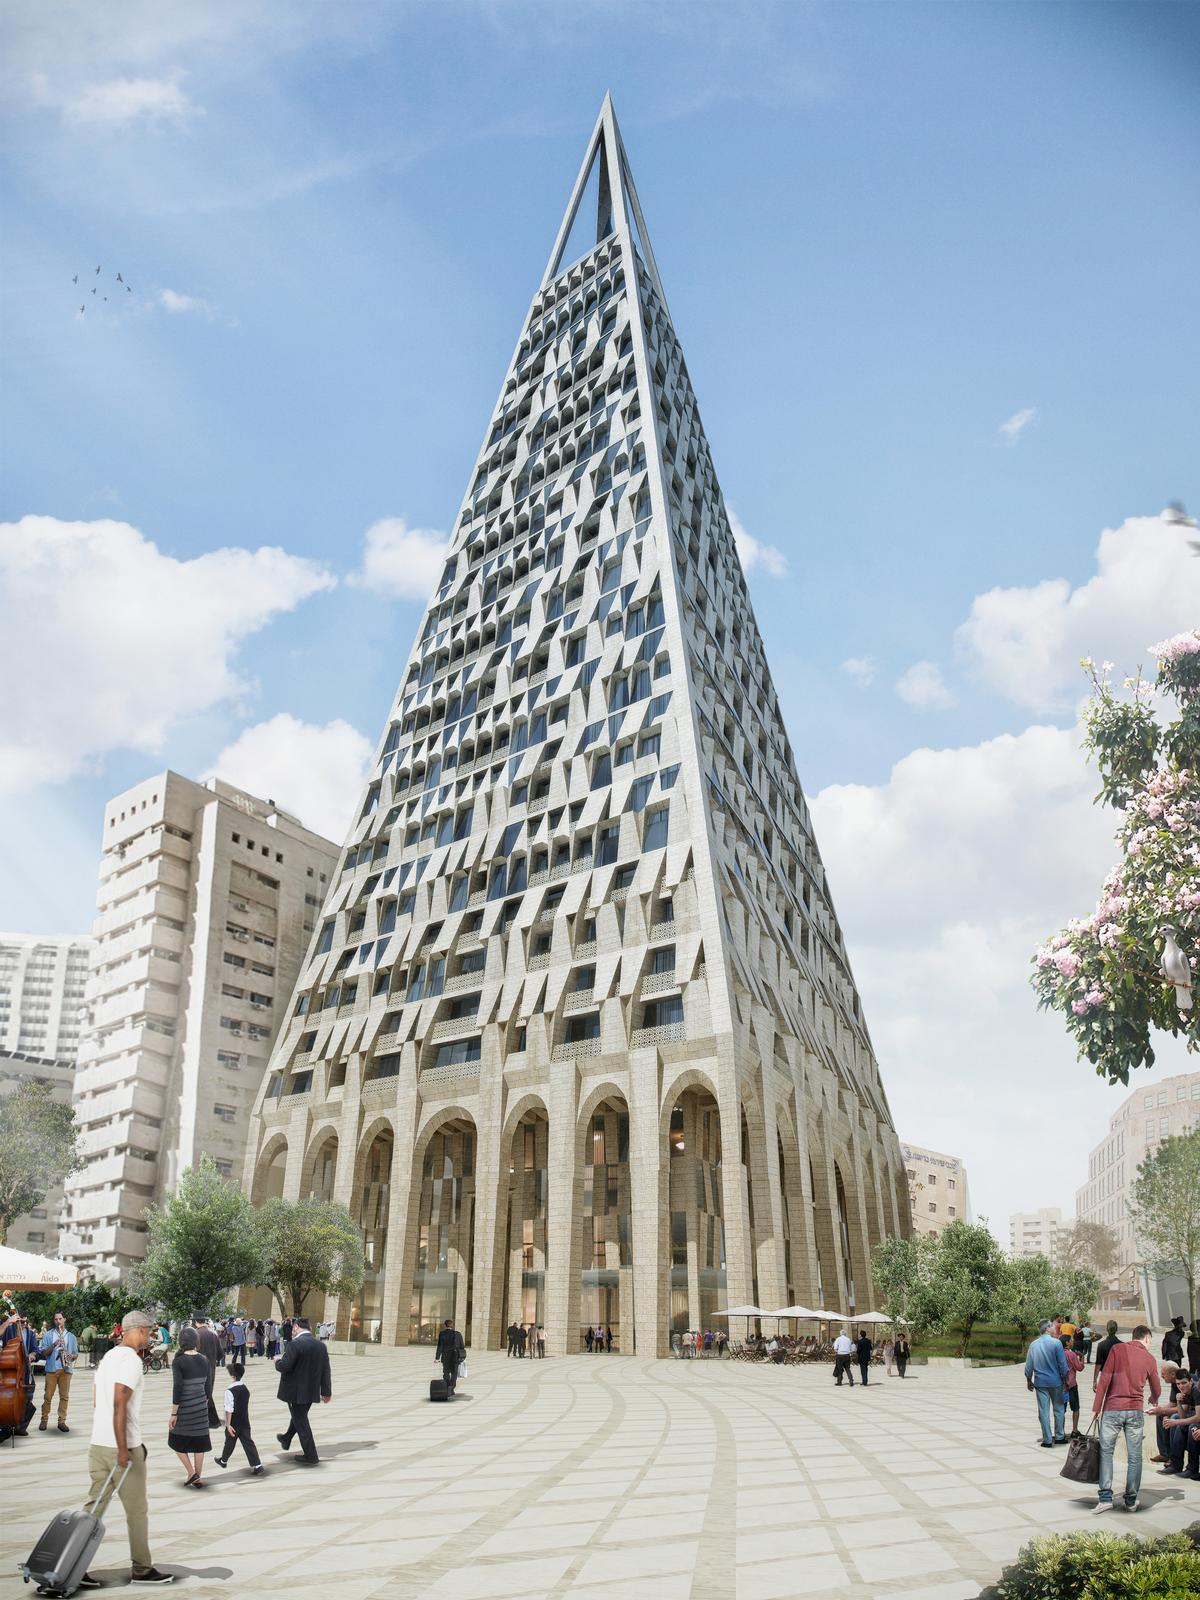 Designed in collaboration with local architect Yogal Levi, the mixed-use tower will be one of the tallest towers in the Israeli city of Jerusalem / Daniel Libeskind